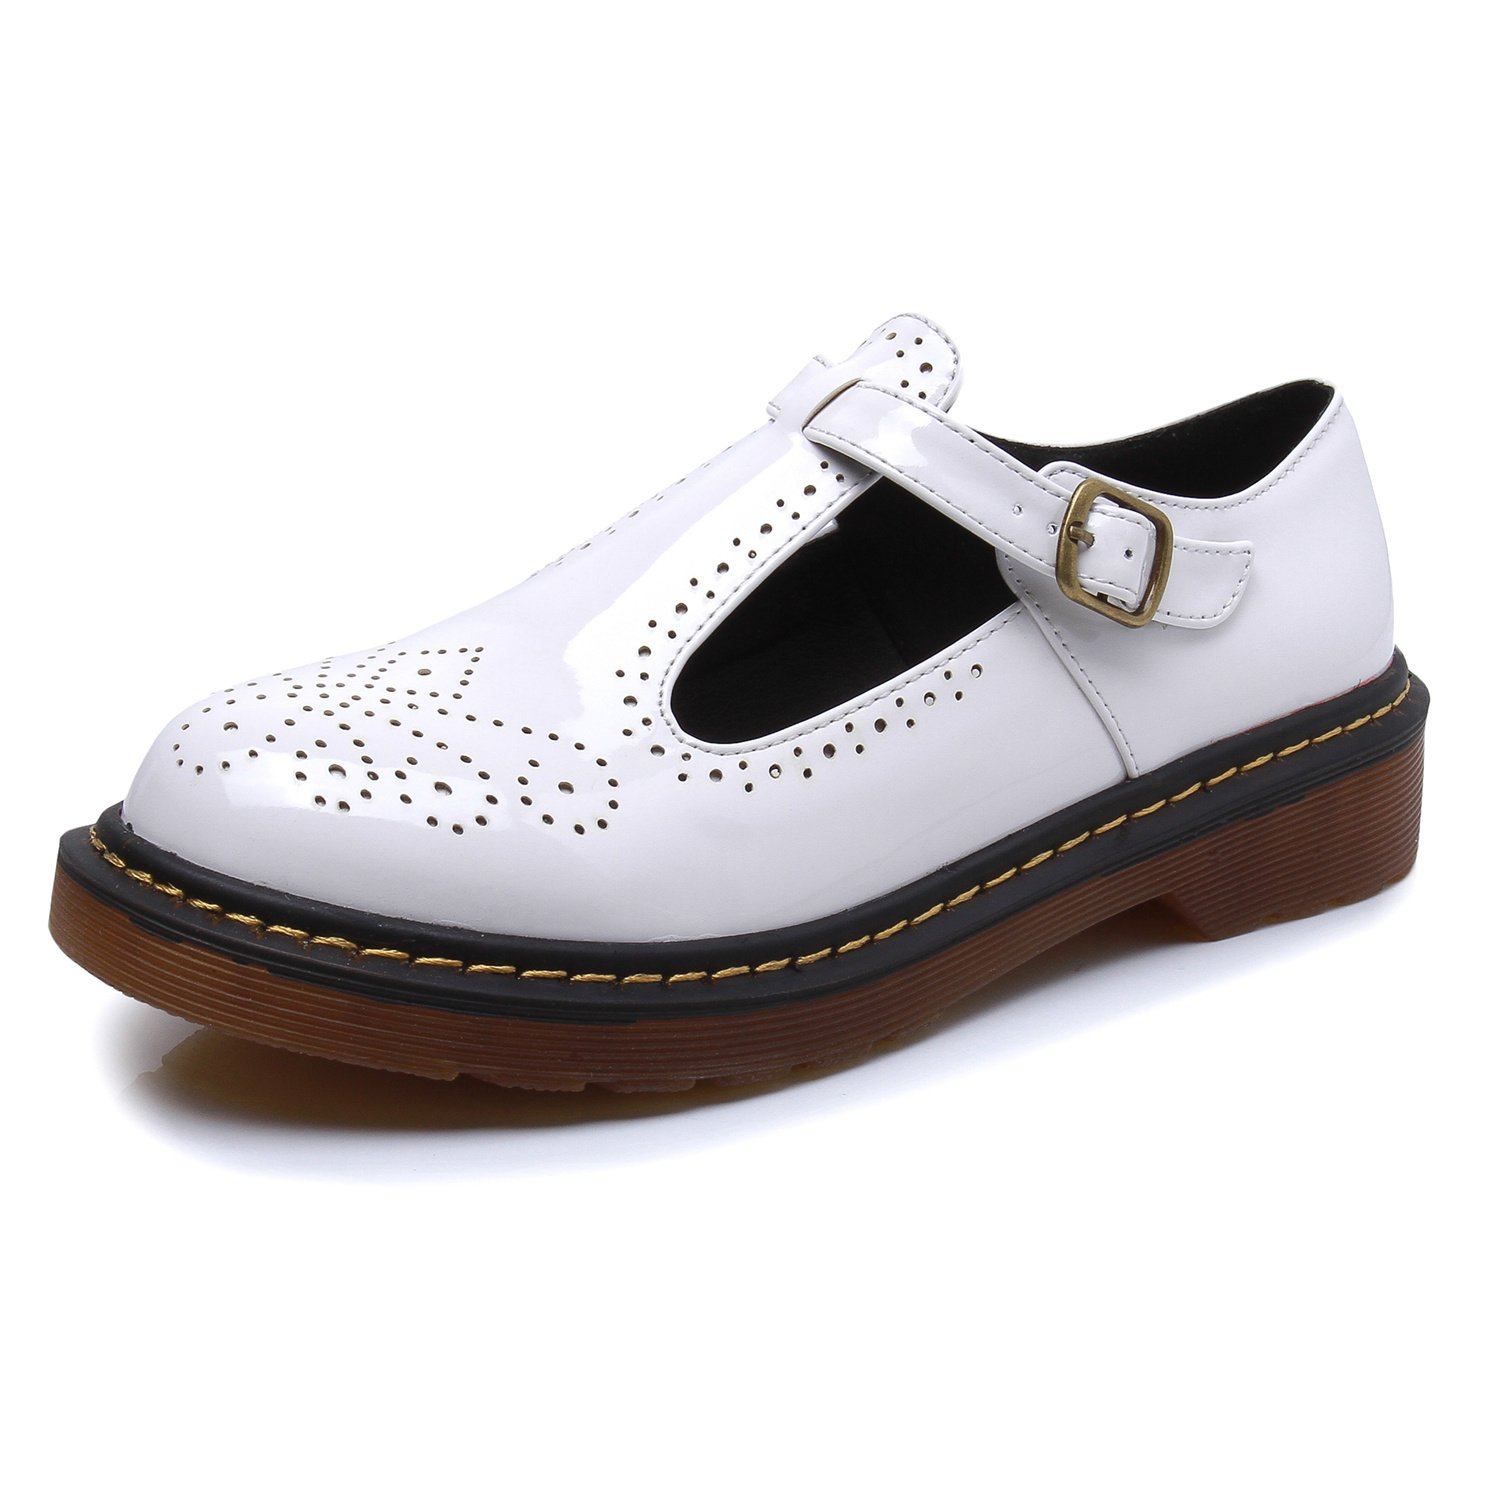 Smilun Chaussures Femme Basses Mary Jane Boucle Blanc Basses Classic 19999 Bout Rond Blanc 6b4b04d - epictionpvp.space